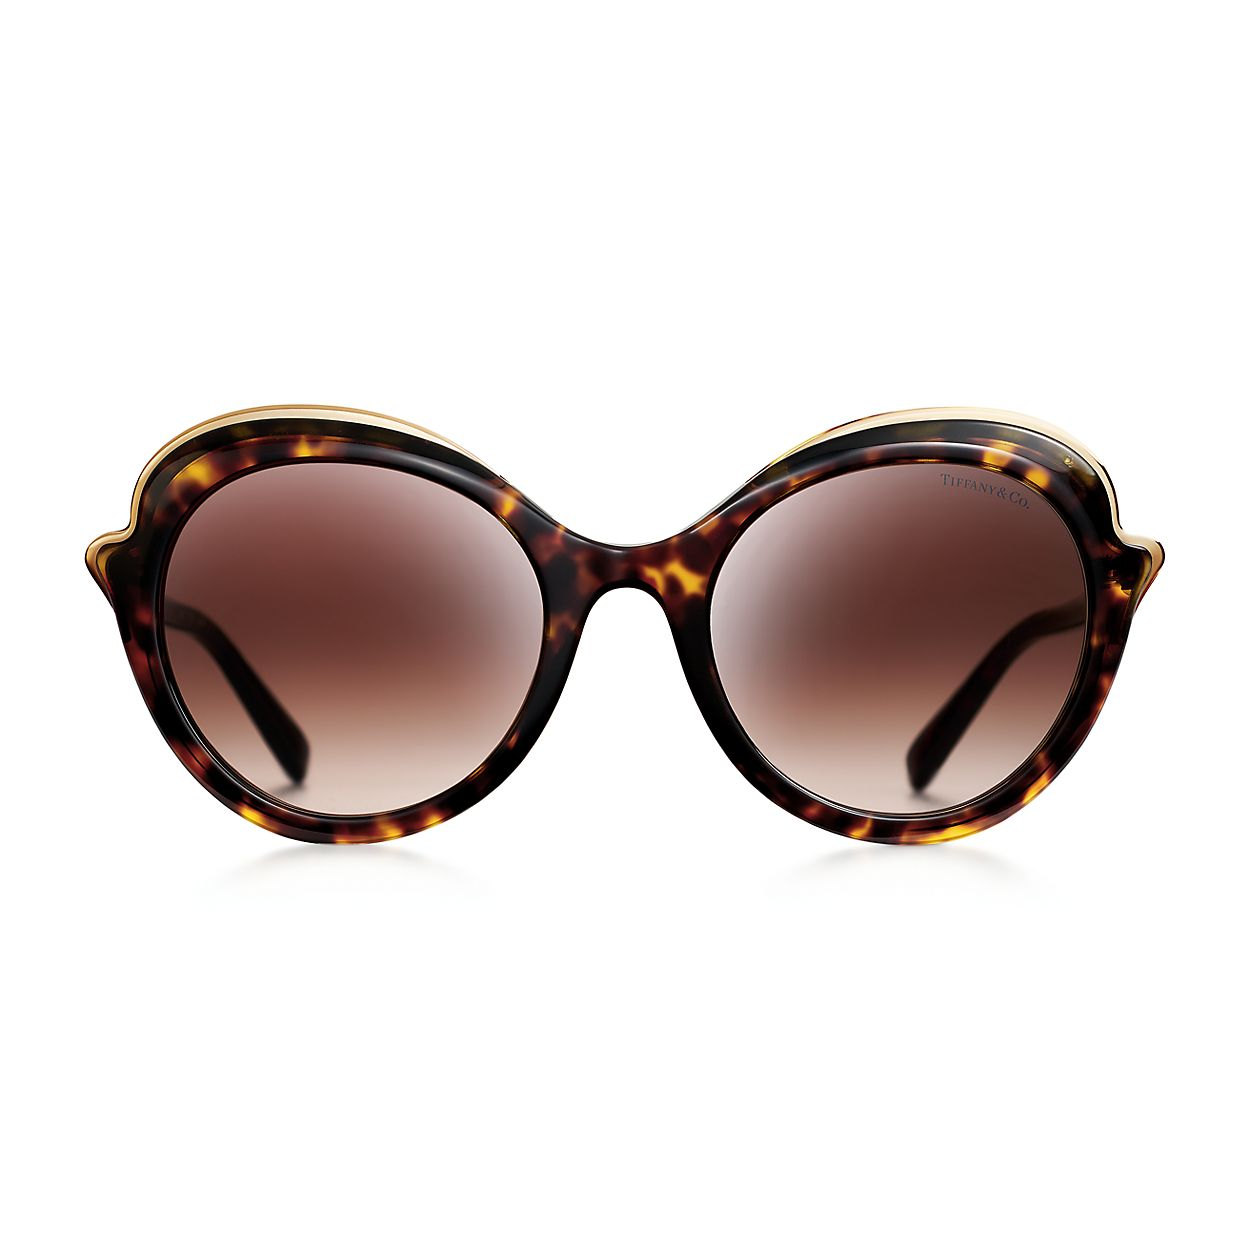 ded6984ebbb1 Tiffany Paper Flowers cat eye sunglasses in tortoise acetate ...